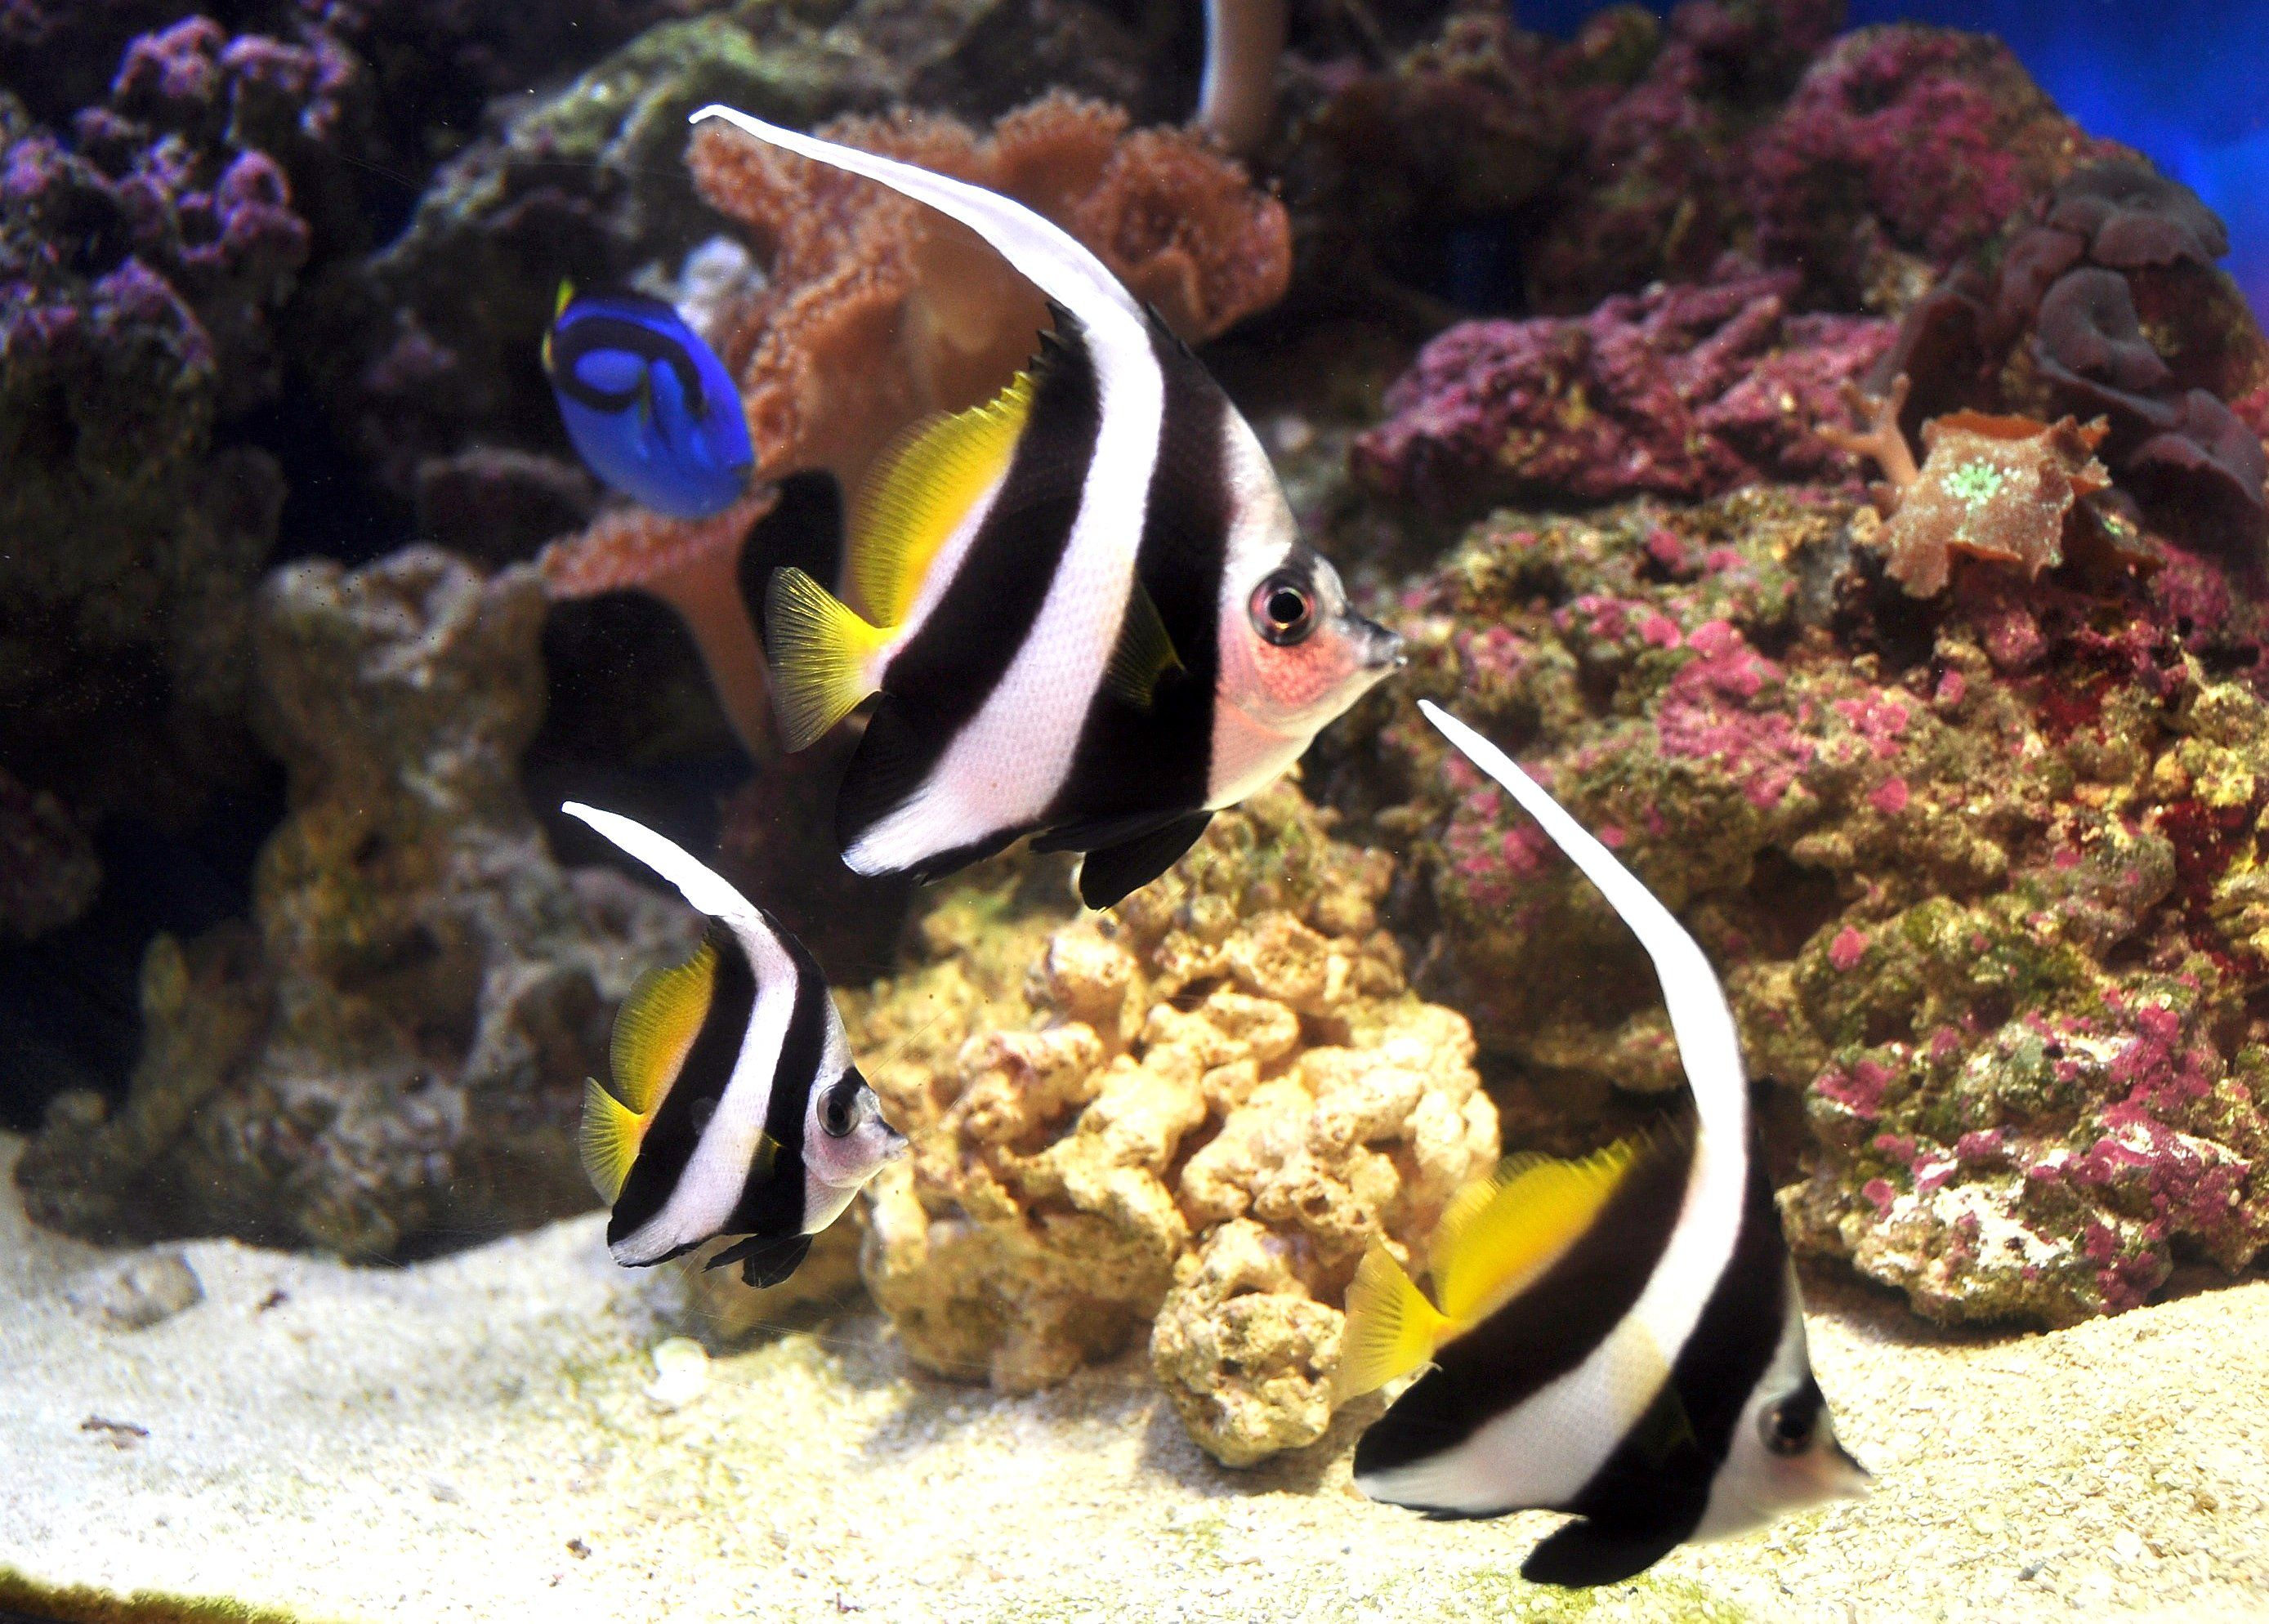 Saltwater aquarium - Saltwater Aquarium Fish Species